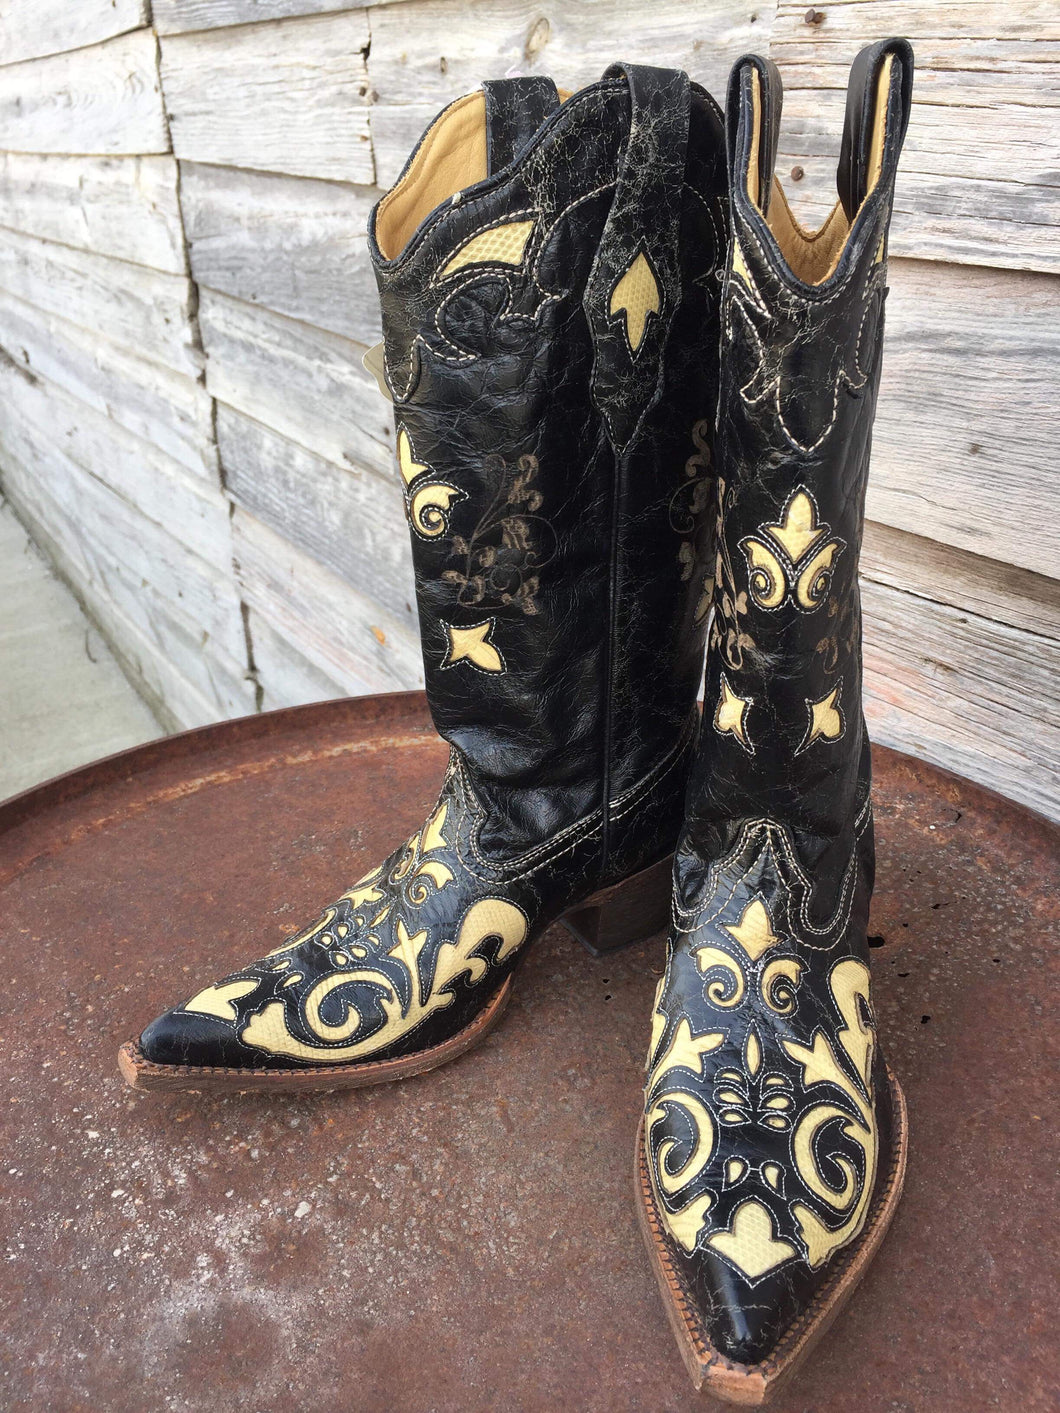 Vintage Black & White Lizard Corral Boots